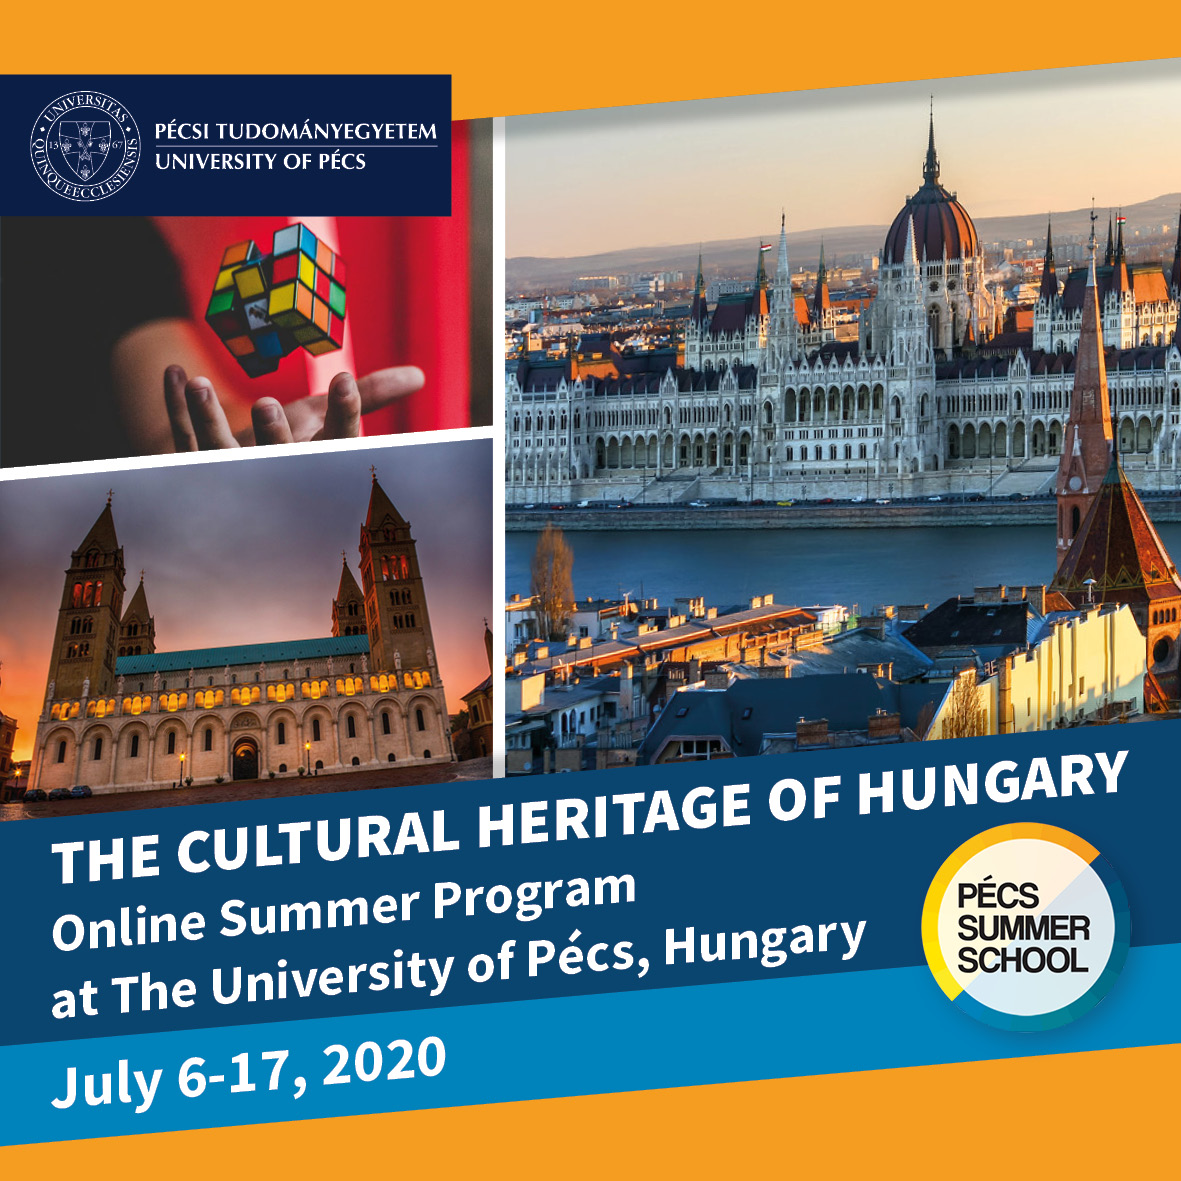 Online Summer School about the Cultural Heritage of Hungary